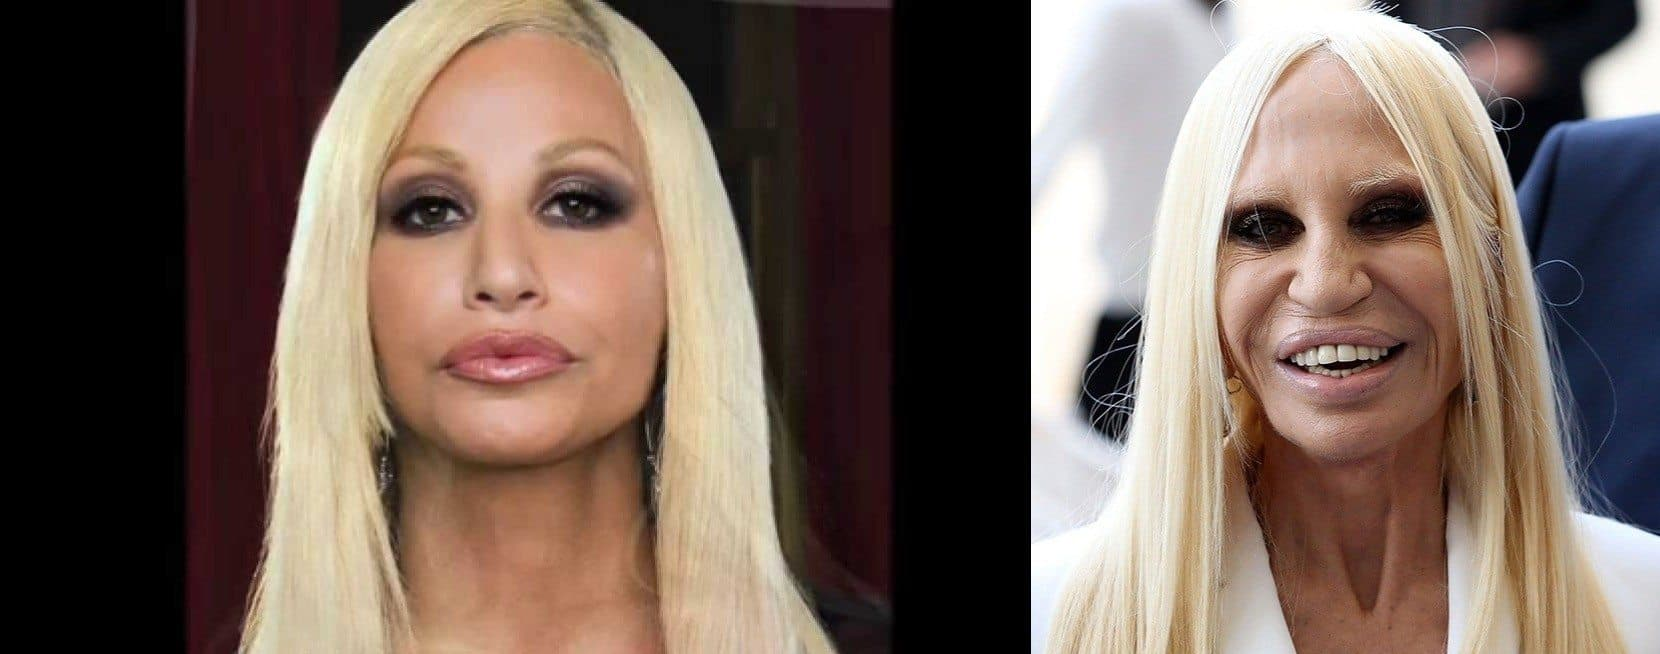 Donatella Plastic Surgery Before photo - 1